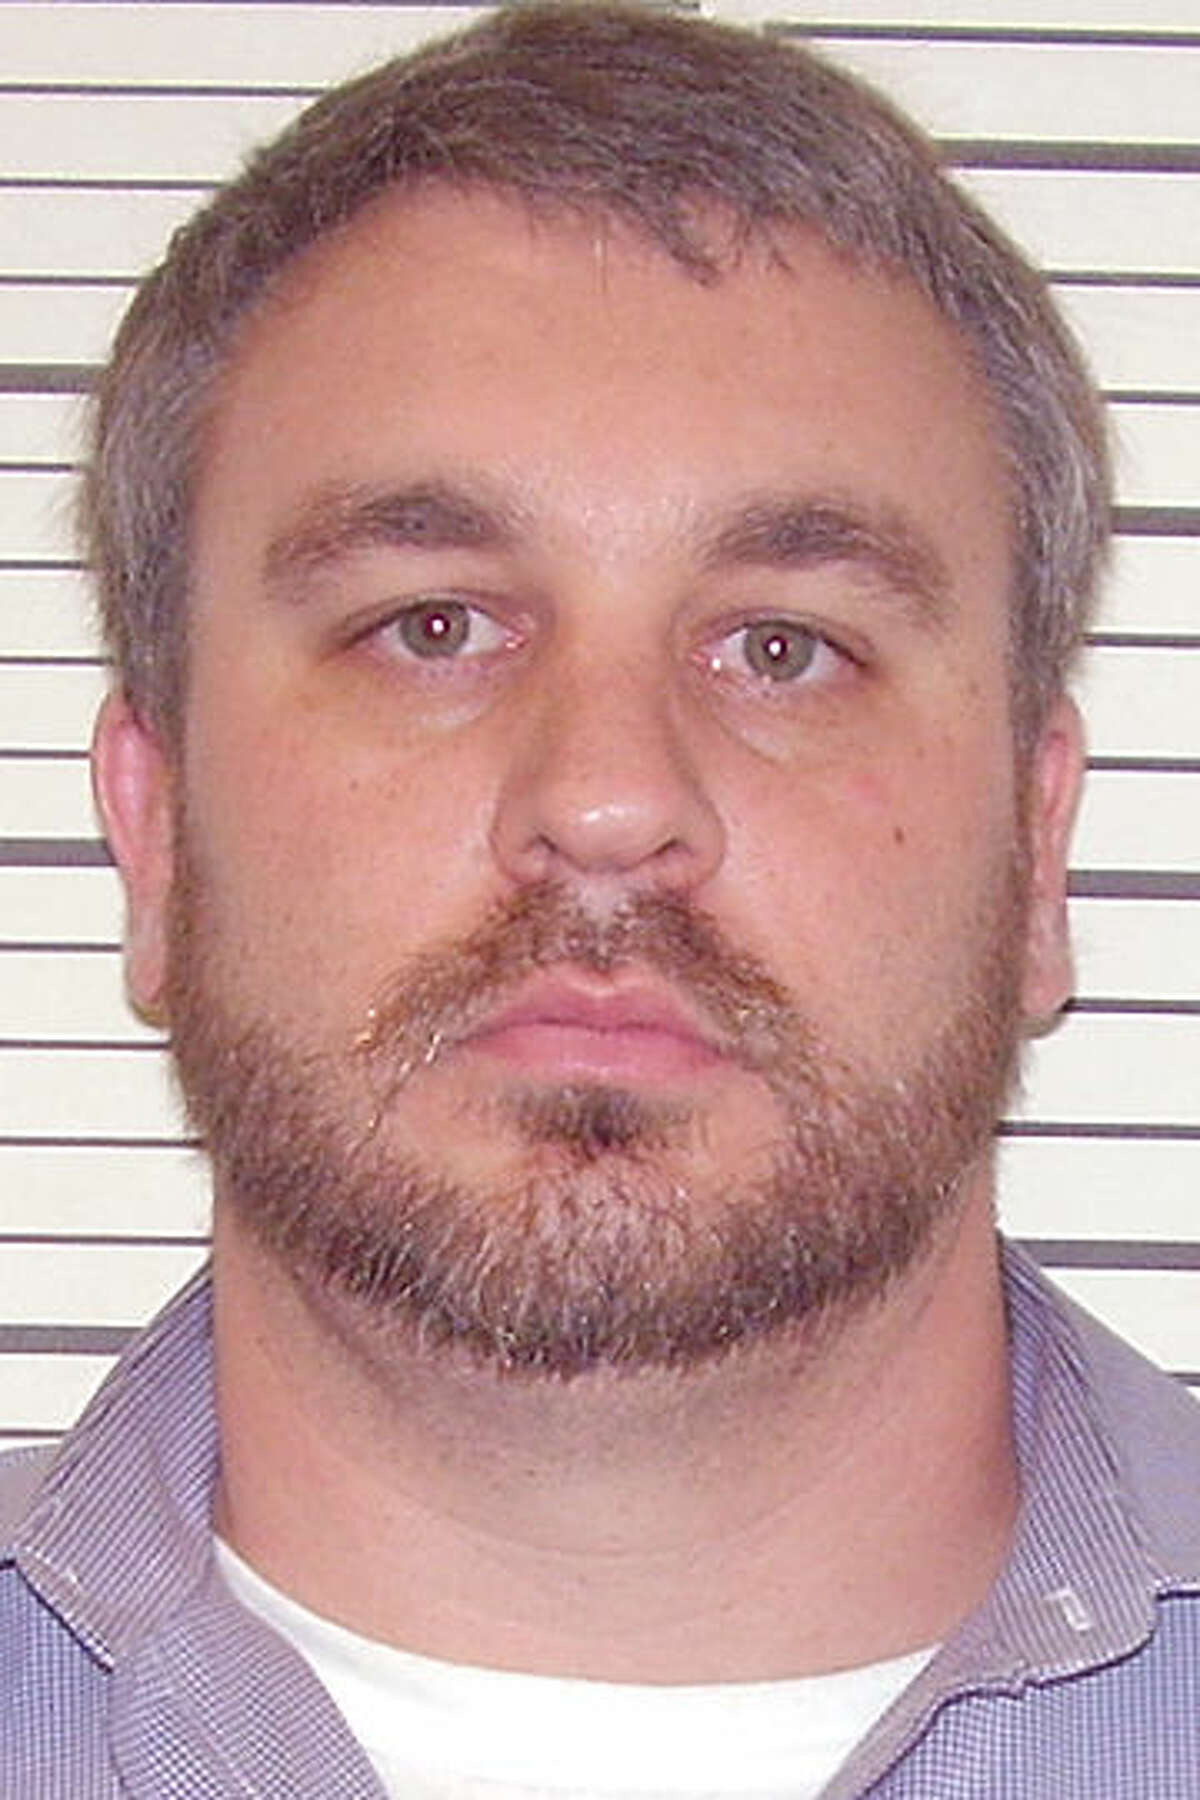 Charles Kyle Adcock, 31, pleaded not guilty in February 2015 in an Alabama court to 12 counts of first-degree rape, nine counts of second-degree sodomy and eight counts of second-degree rape. The charges stem from his alleged sexual abuse of a 14-year-old girl while serving at Woodward Avenue Baptist Church in Muscle Shoals, Alabama from 2010-12.